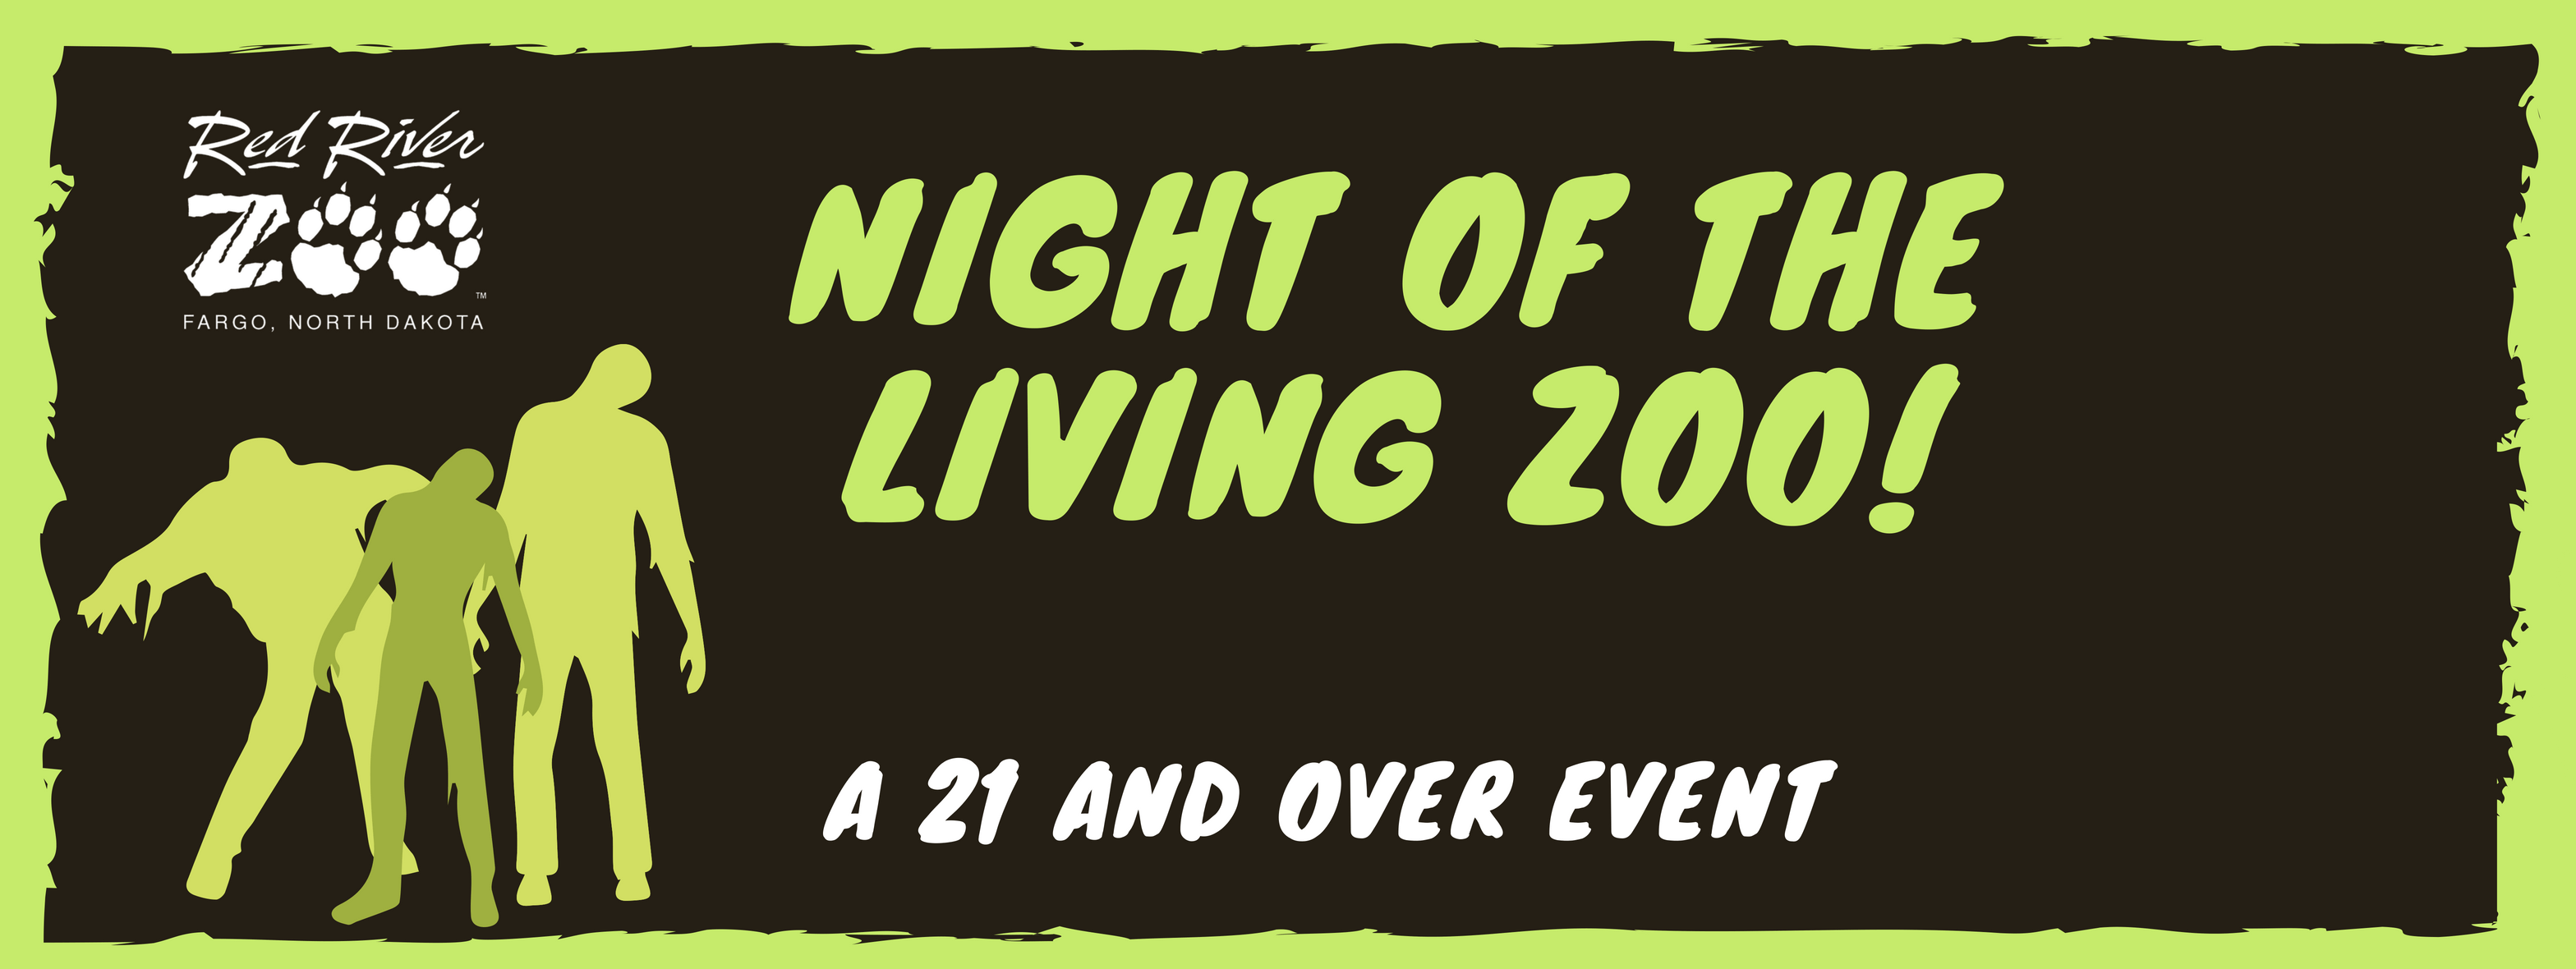 Night of the Living Zoo!